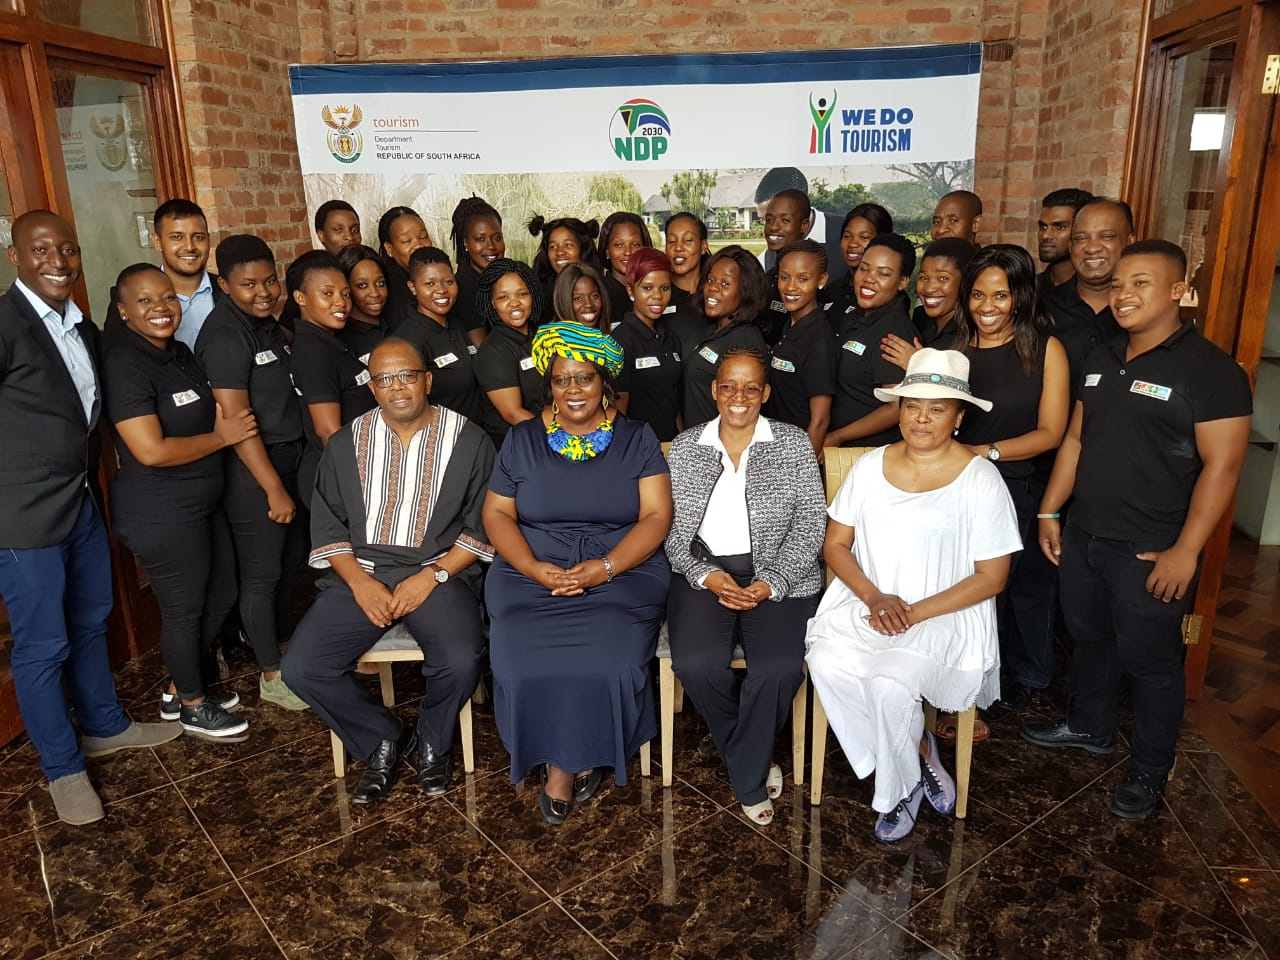 Wine Steward Youth Training Programme adds to the tourism skills pool